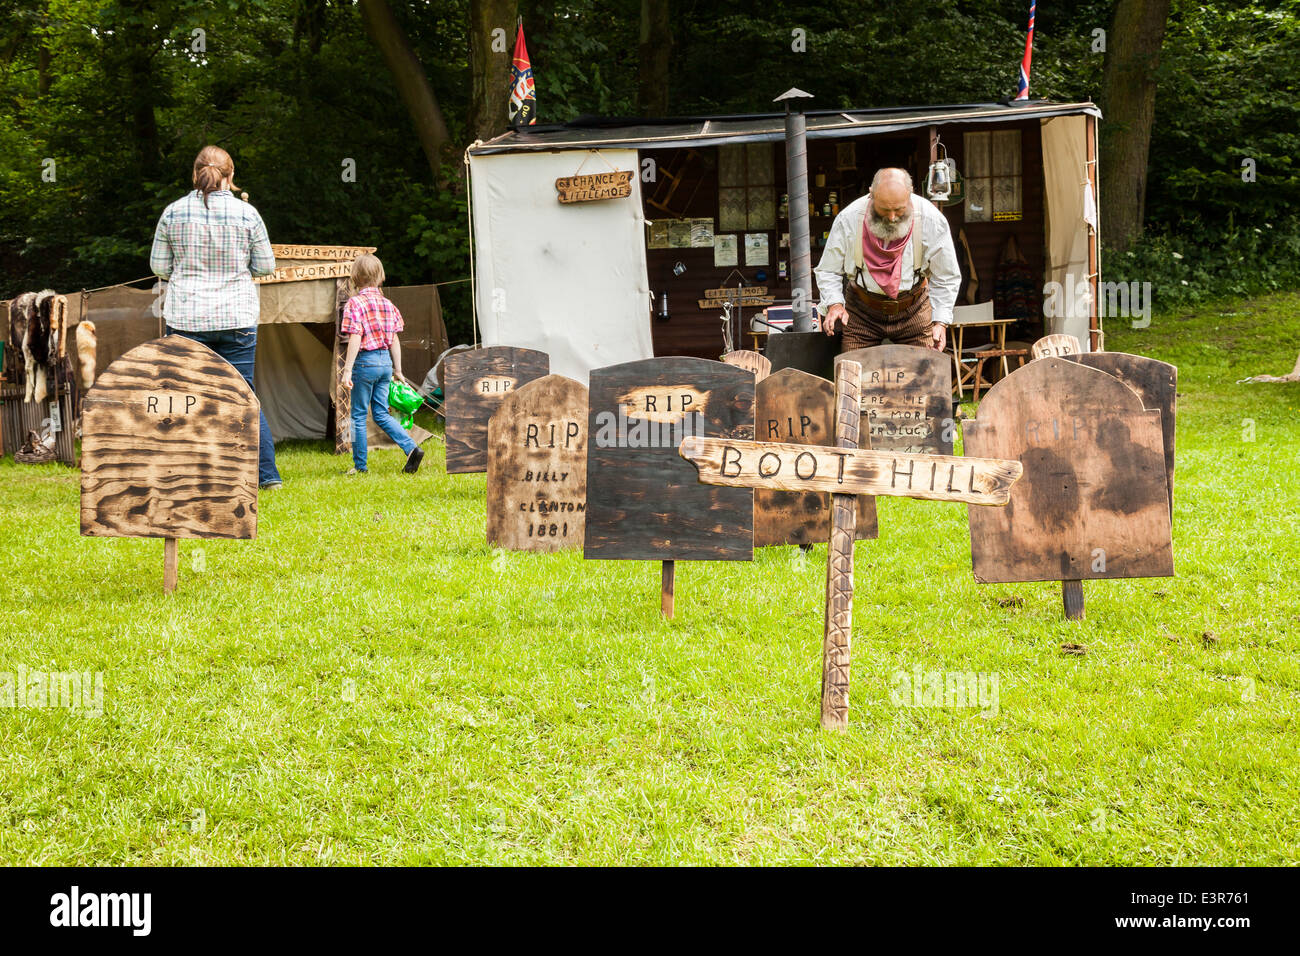 Leek, Staffordshire, England. 22nd June 2014, A Western Weekend. Man tidying up the wooden tombstone props on boot - Stock Image